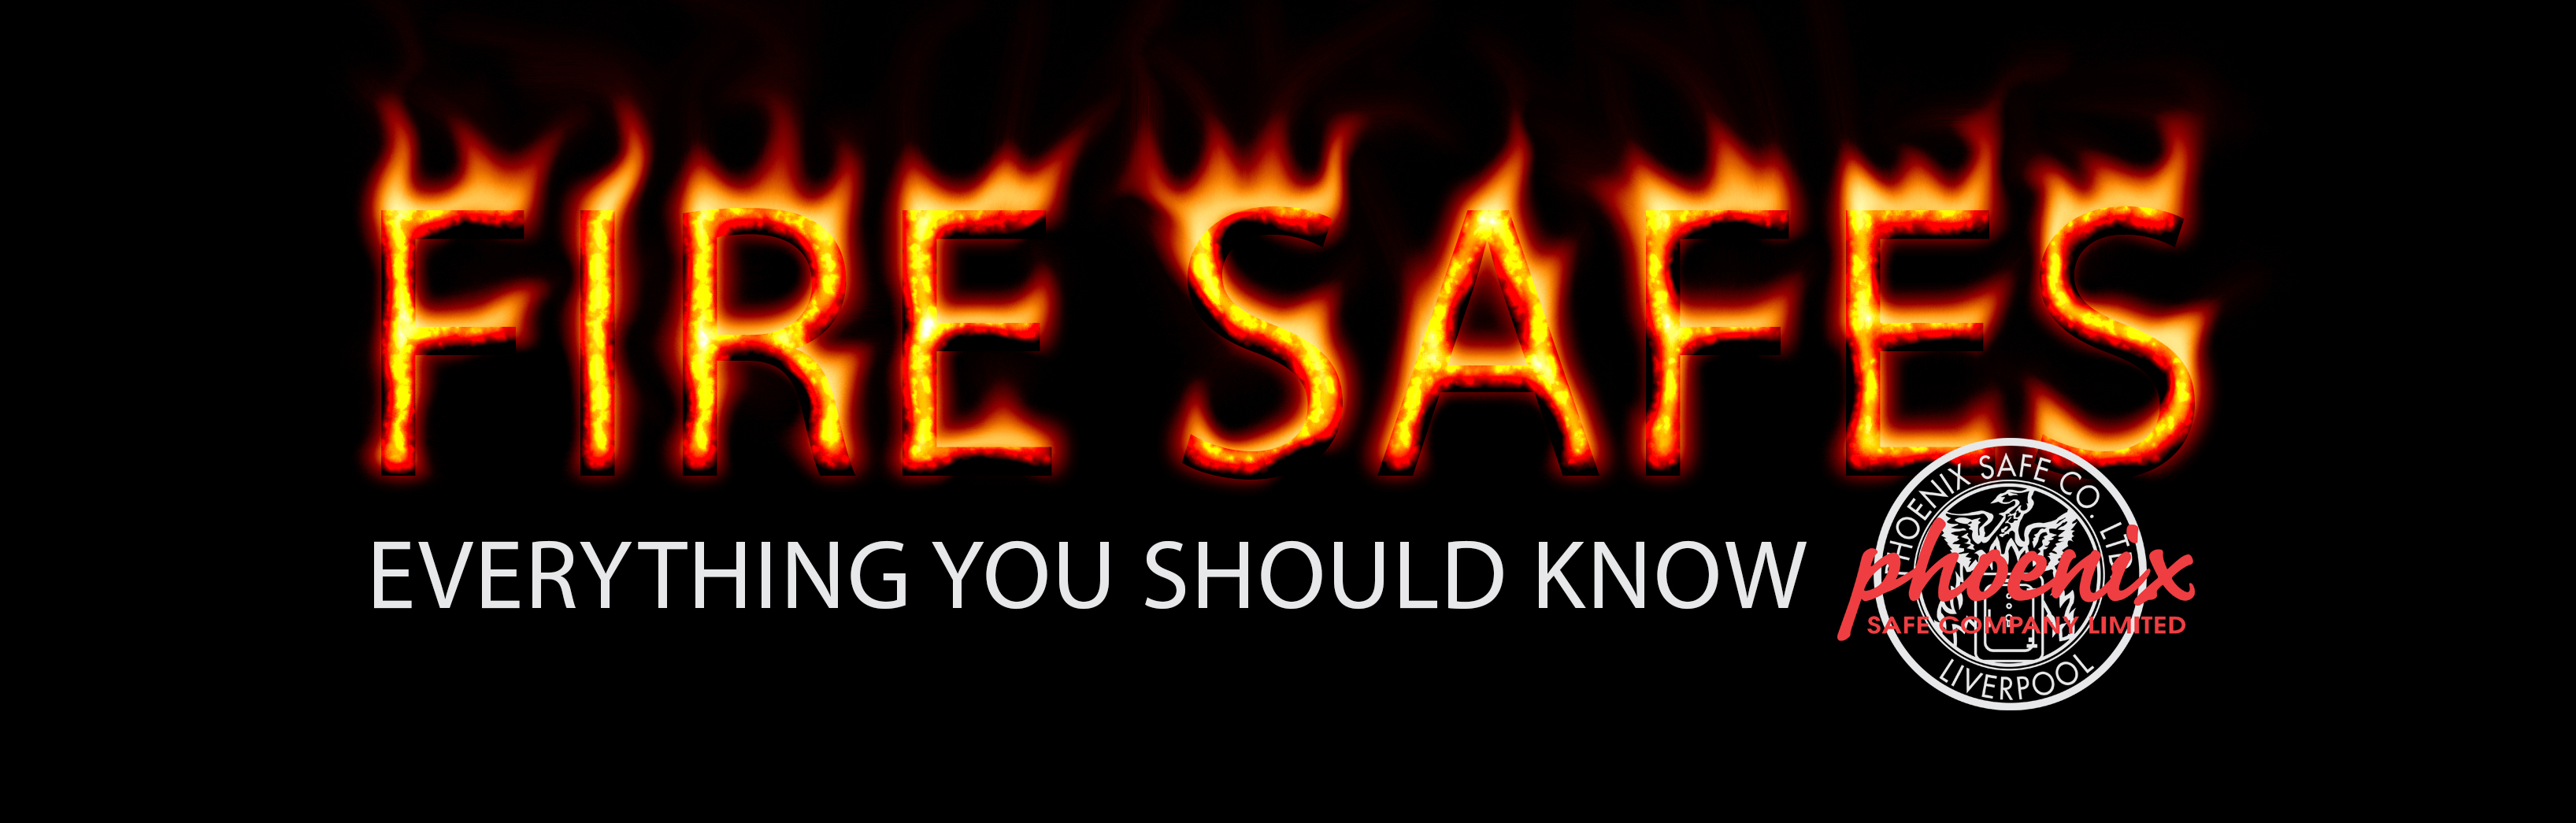 fire safes web banner